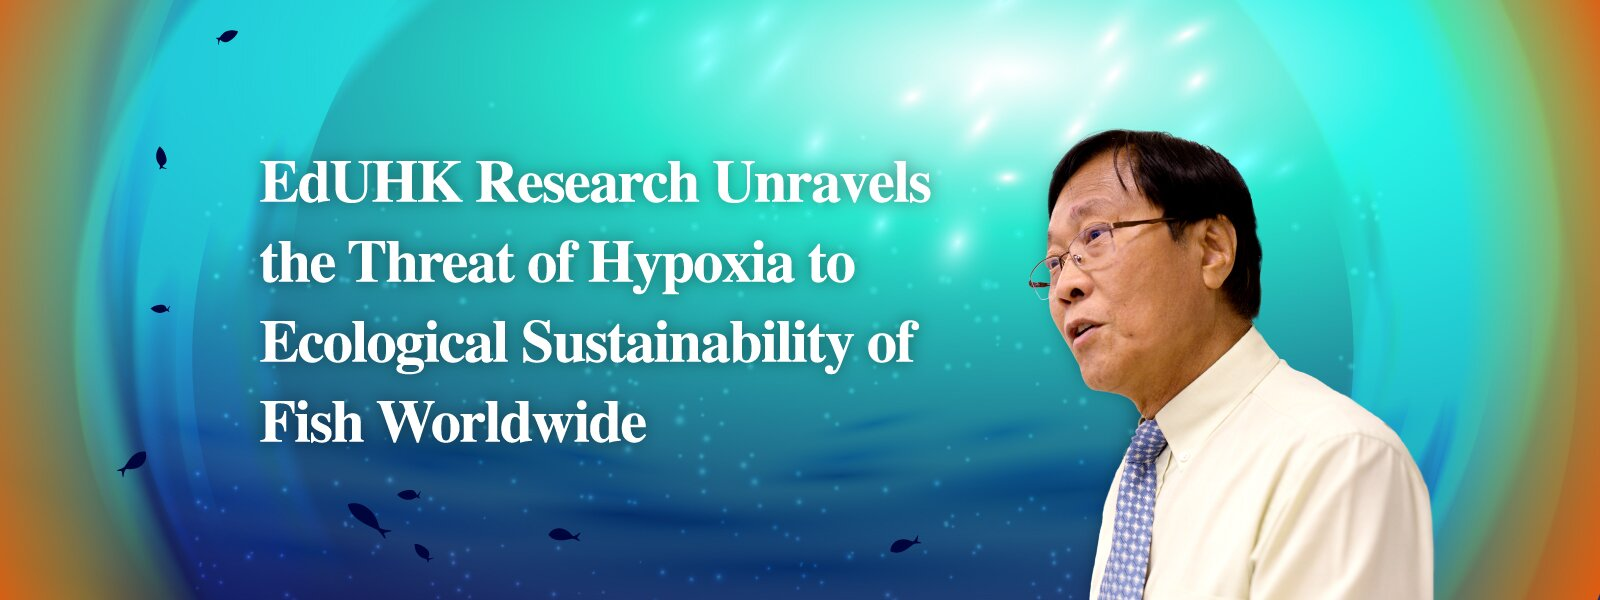 EdUHK research unravels the threat of hypoxia to ecological sustainability of fish worldwide